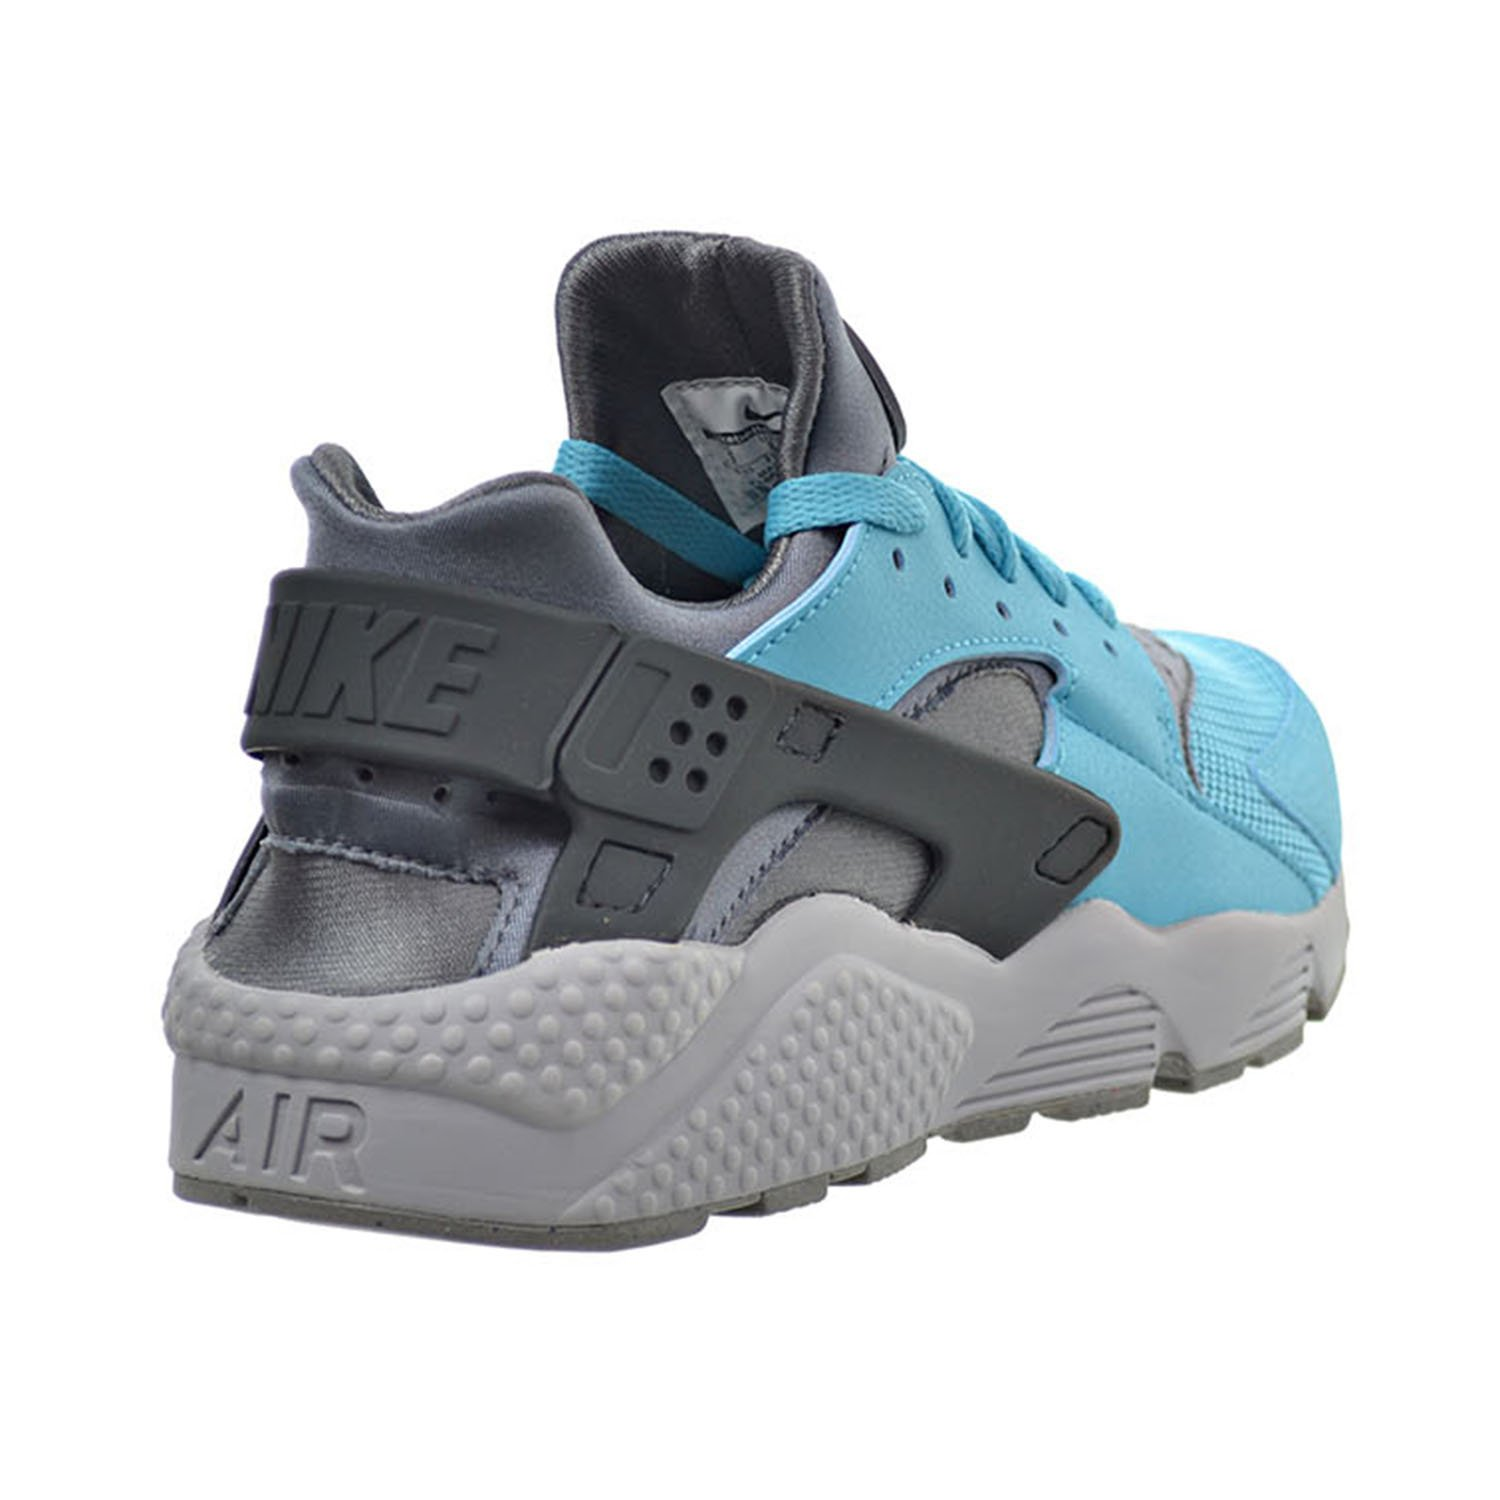 08caf426450e Nike Air Huarache Men s Shoes Beta Blue Anthracite Cool Grey 318429-408 (10  D(M) US)  Buy Online at Low Prices in India - Amazon.in